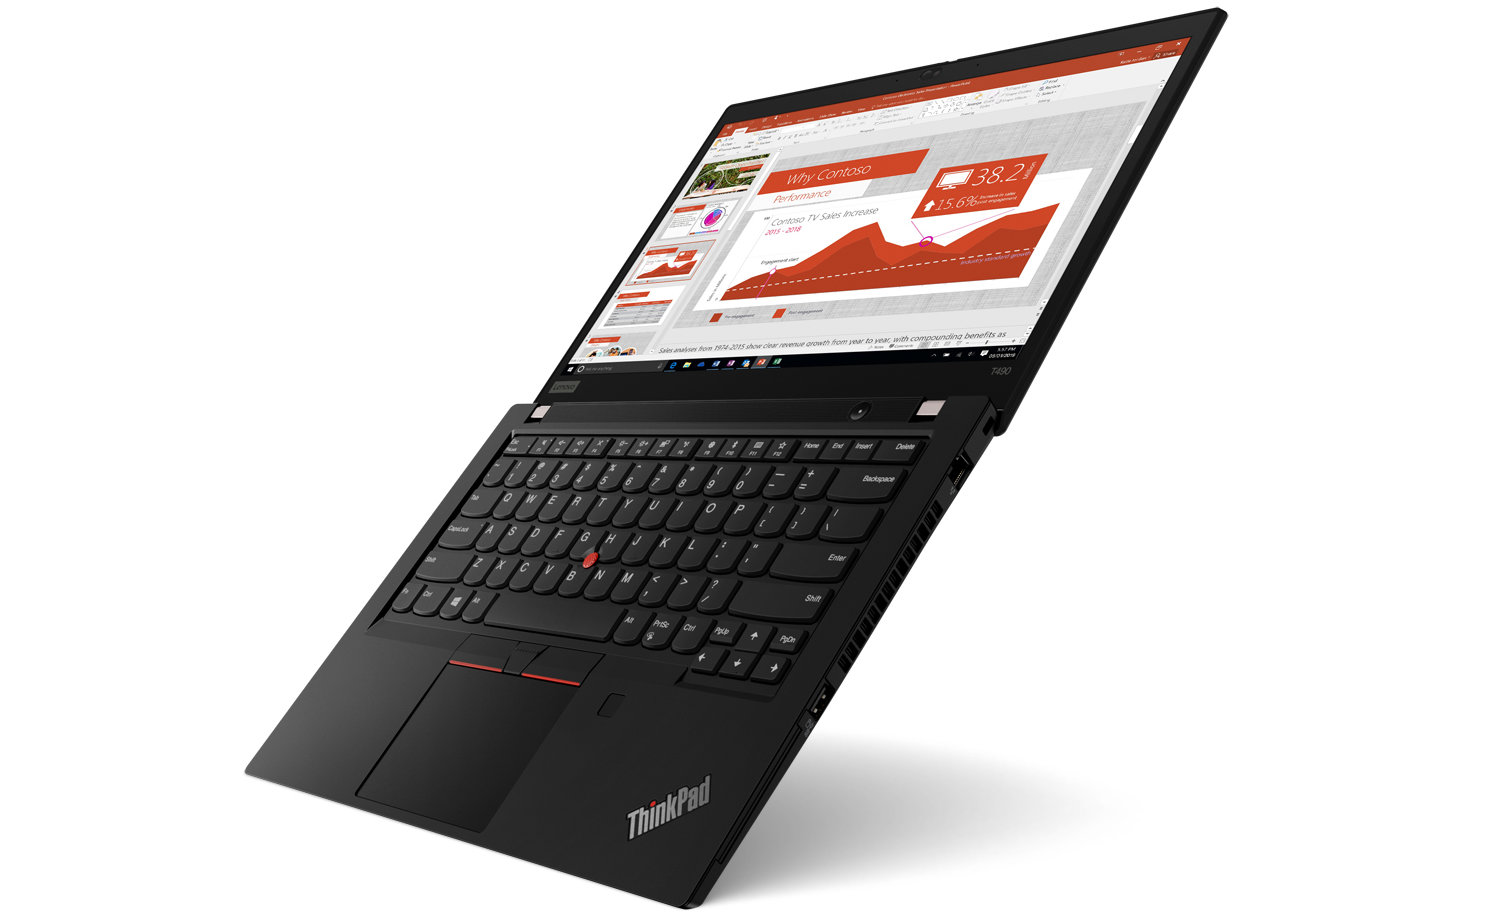 Lenovo ThinkPad T490 is a compromise between power and portability